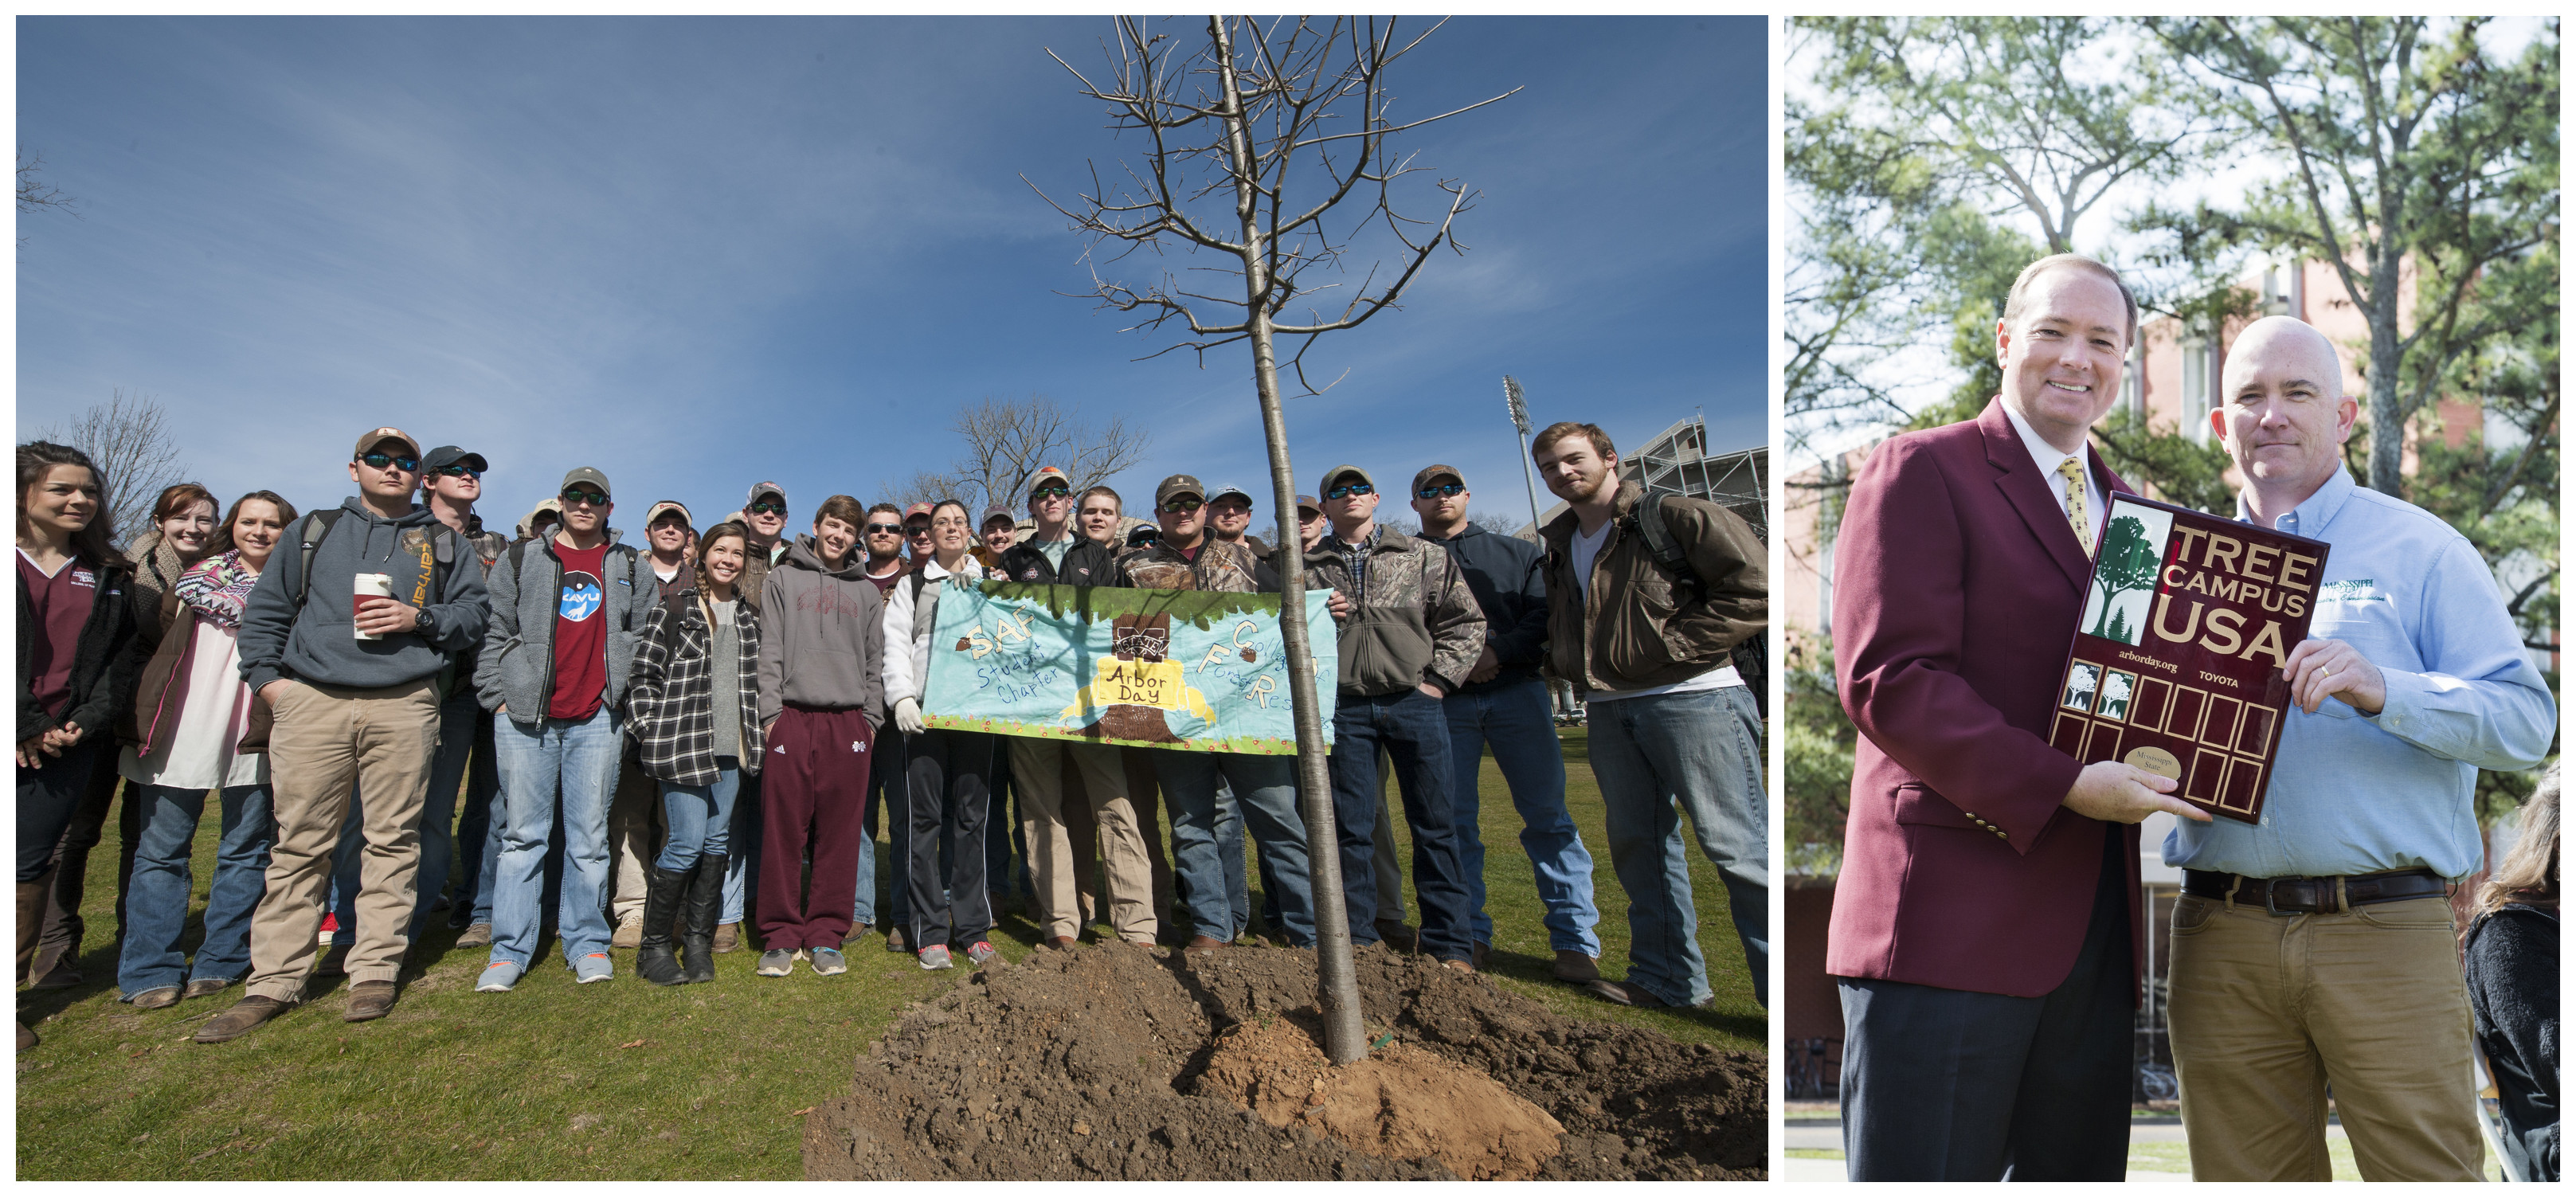 Left: Members of the university's student chapter of the Society of American Foresters planted an oak tree during the Feb. 13 Arbor Day celebration. Right: MSU President Mark E. Keenum, left, received a plaque from Todd Matthews, urban forestry coordinator with the Mississippi Forestry Commission, in recognition of the university's designation as a Tree Campus USA campus by the Arbor Day Foundation.